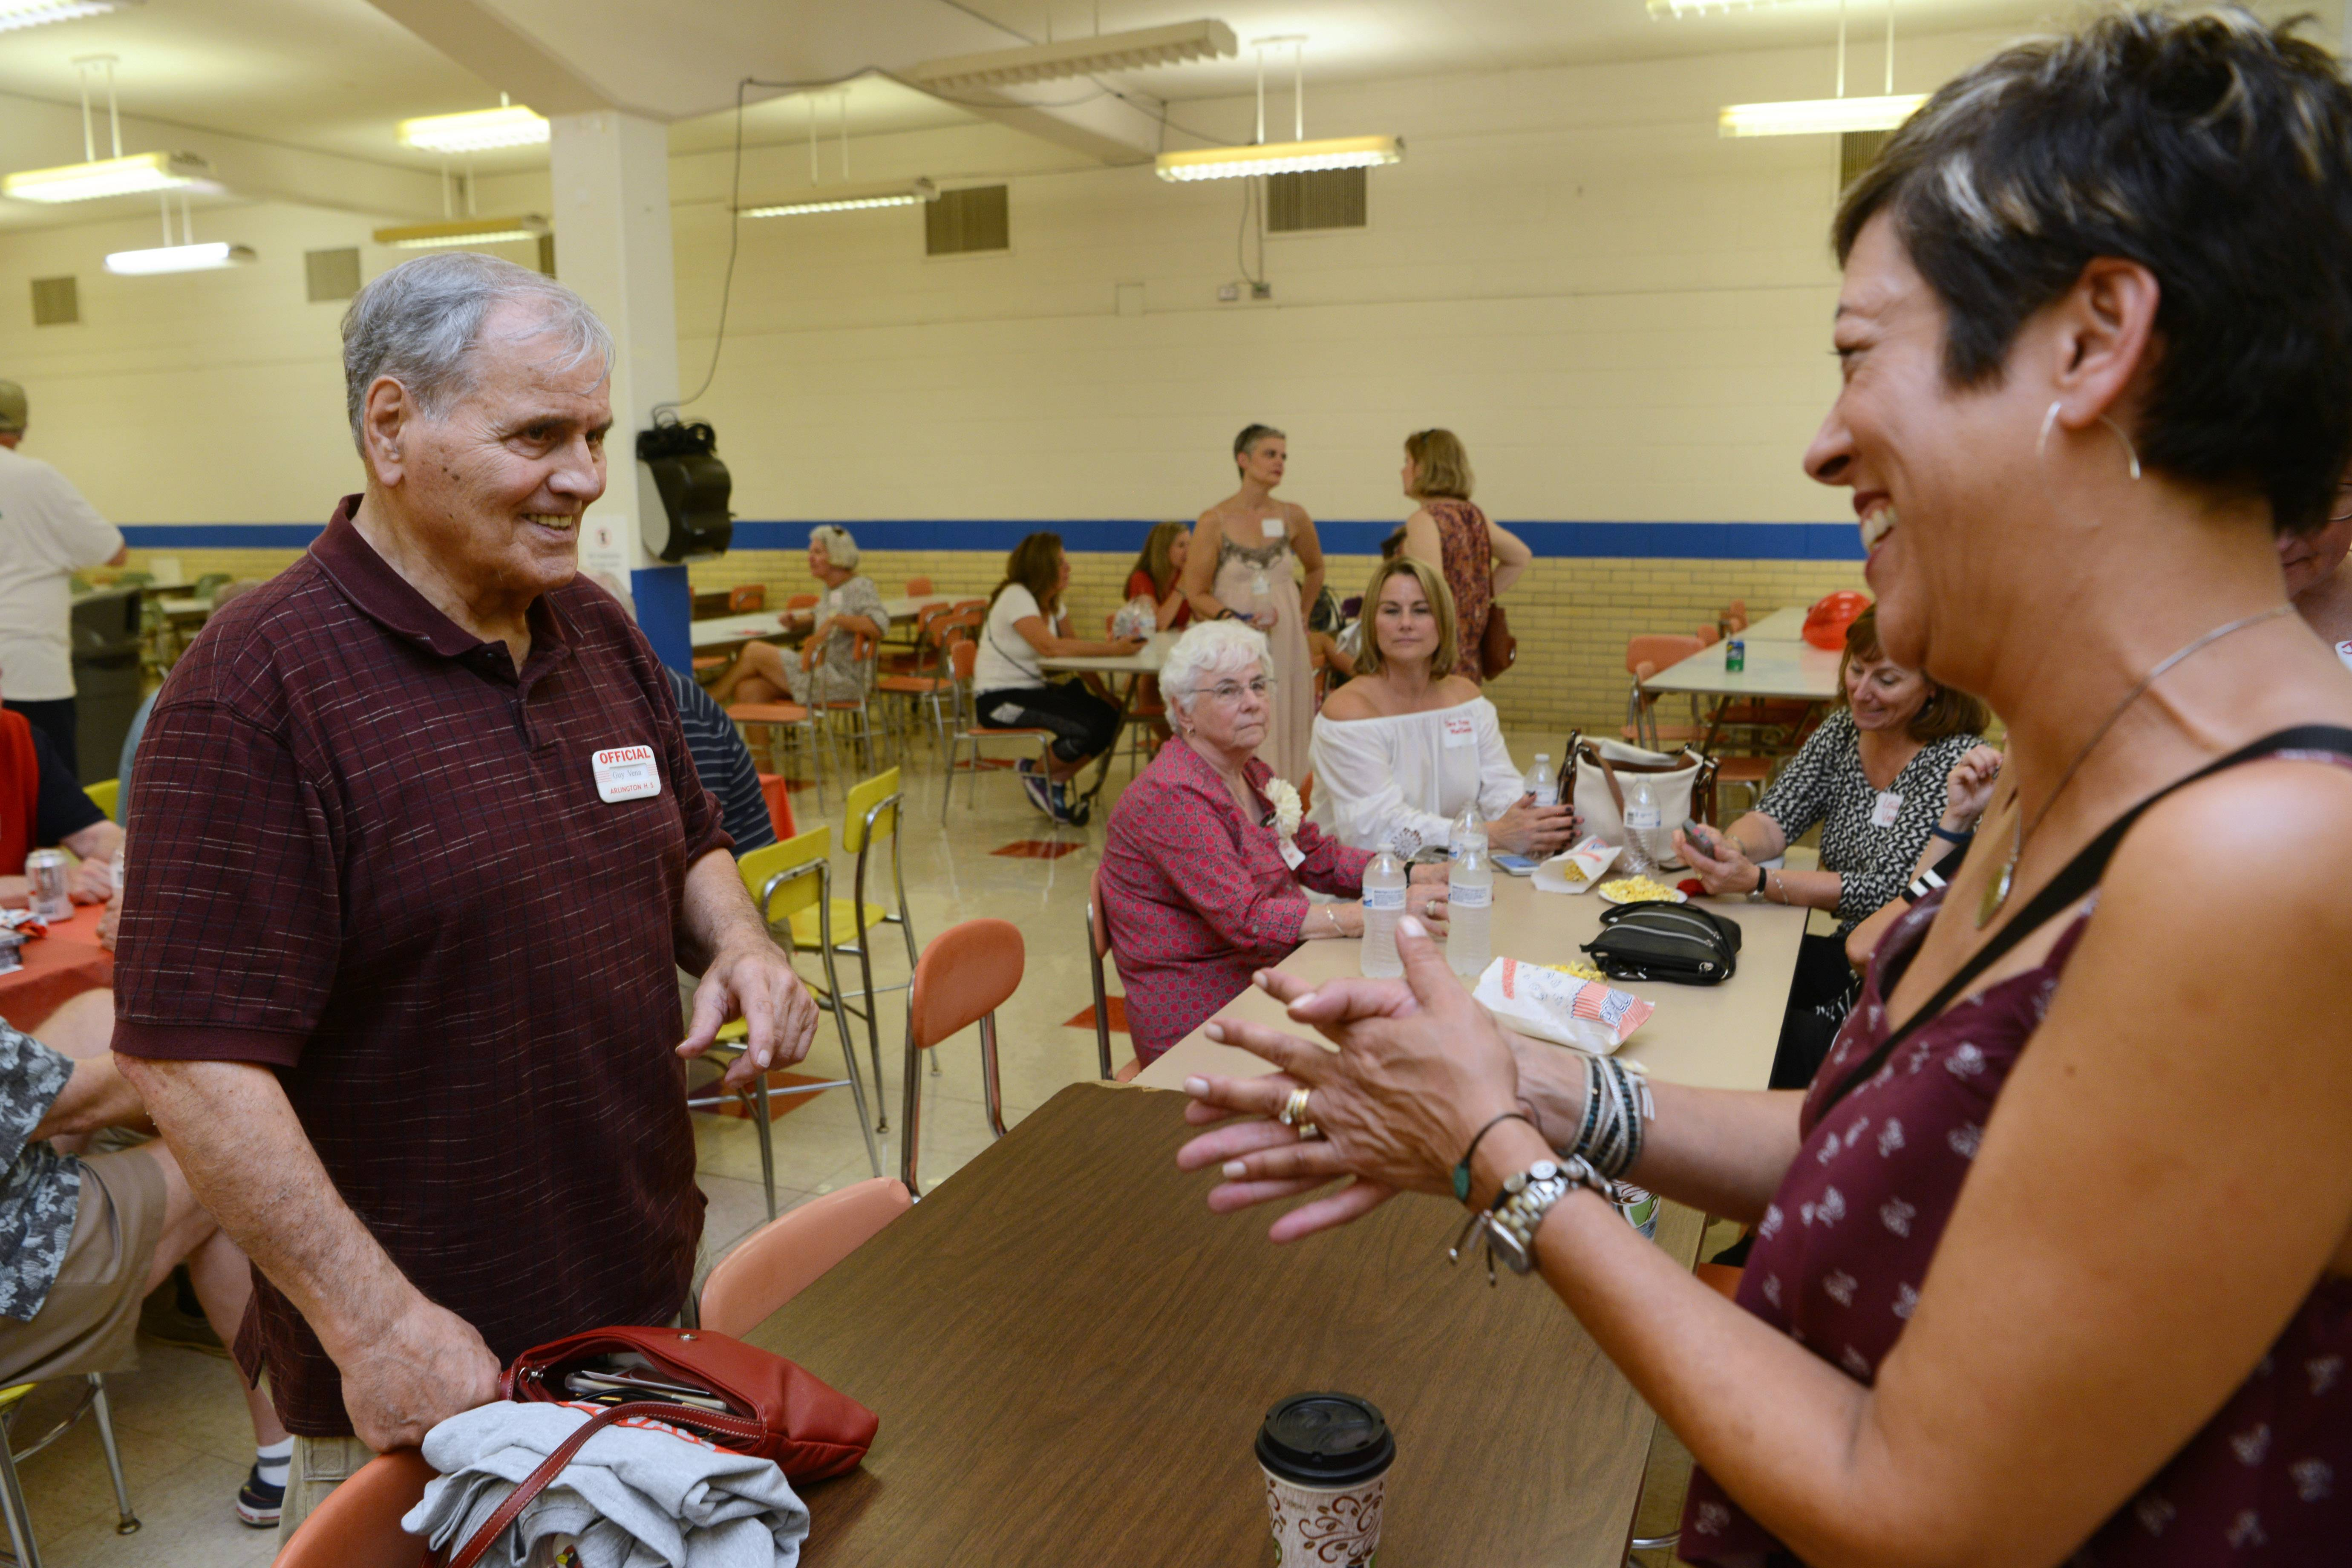 Former dean of students Guy Vena visits with Nancy Aiello Lynk of Arlington Heights, a member of the class of 1981, during the Arlington High School all-class homecoming, held Saturday at the former school building, which is now Christian Liberty Academy.